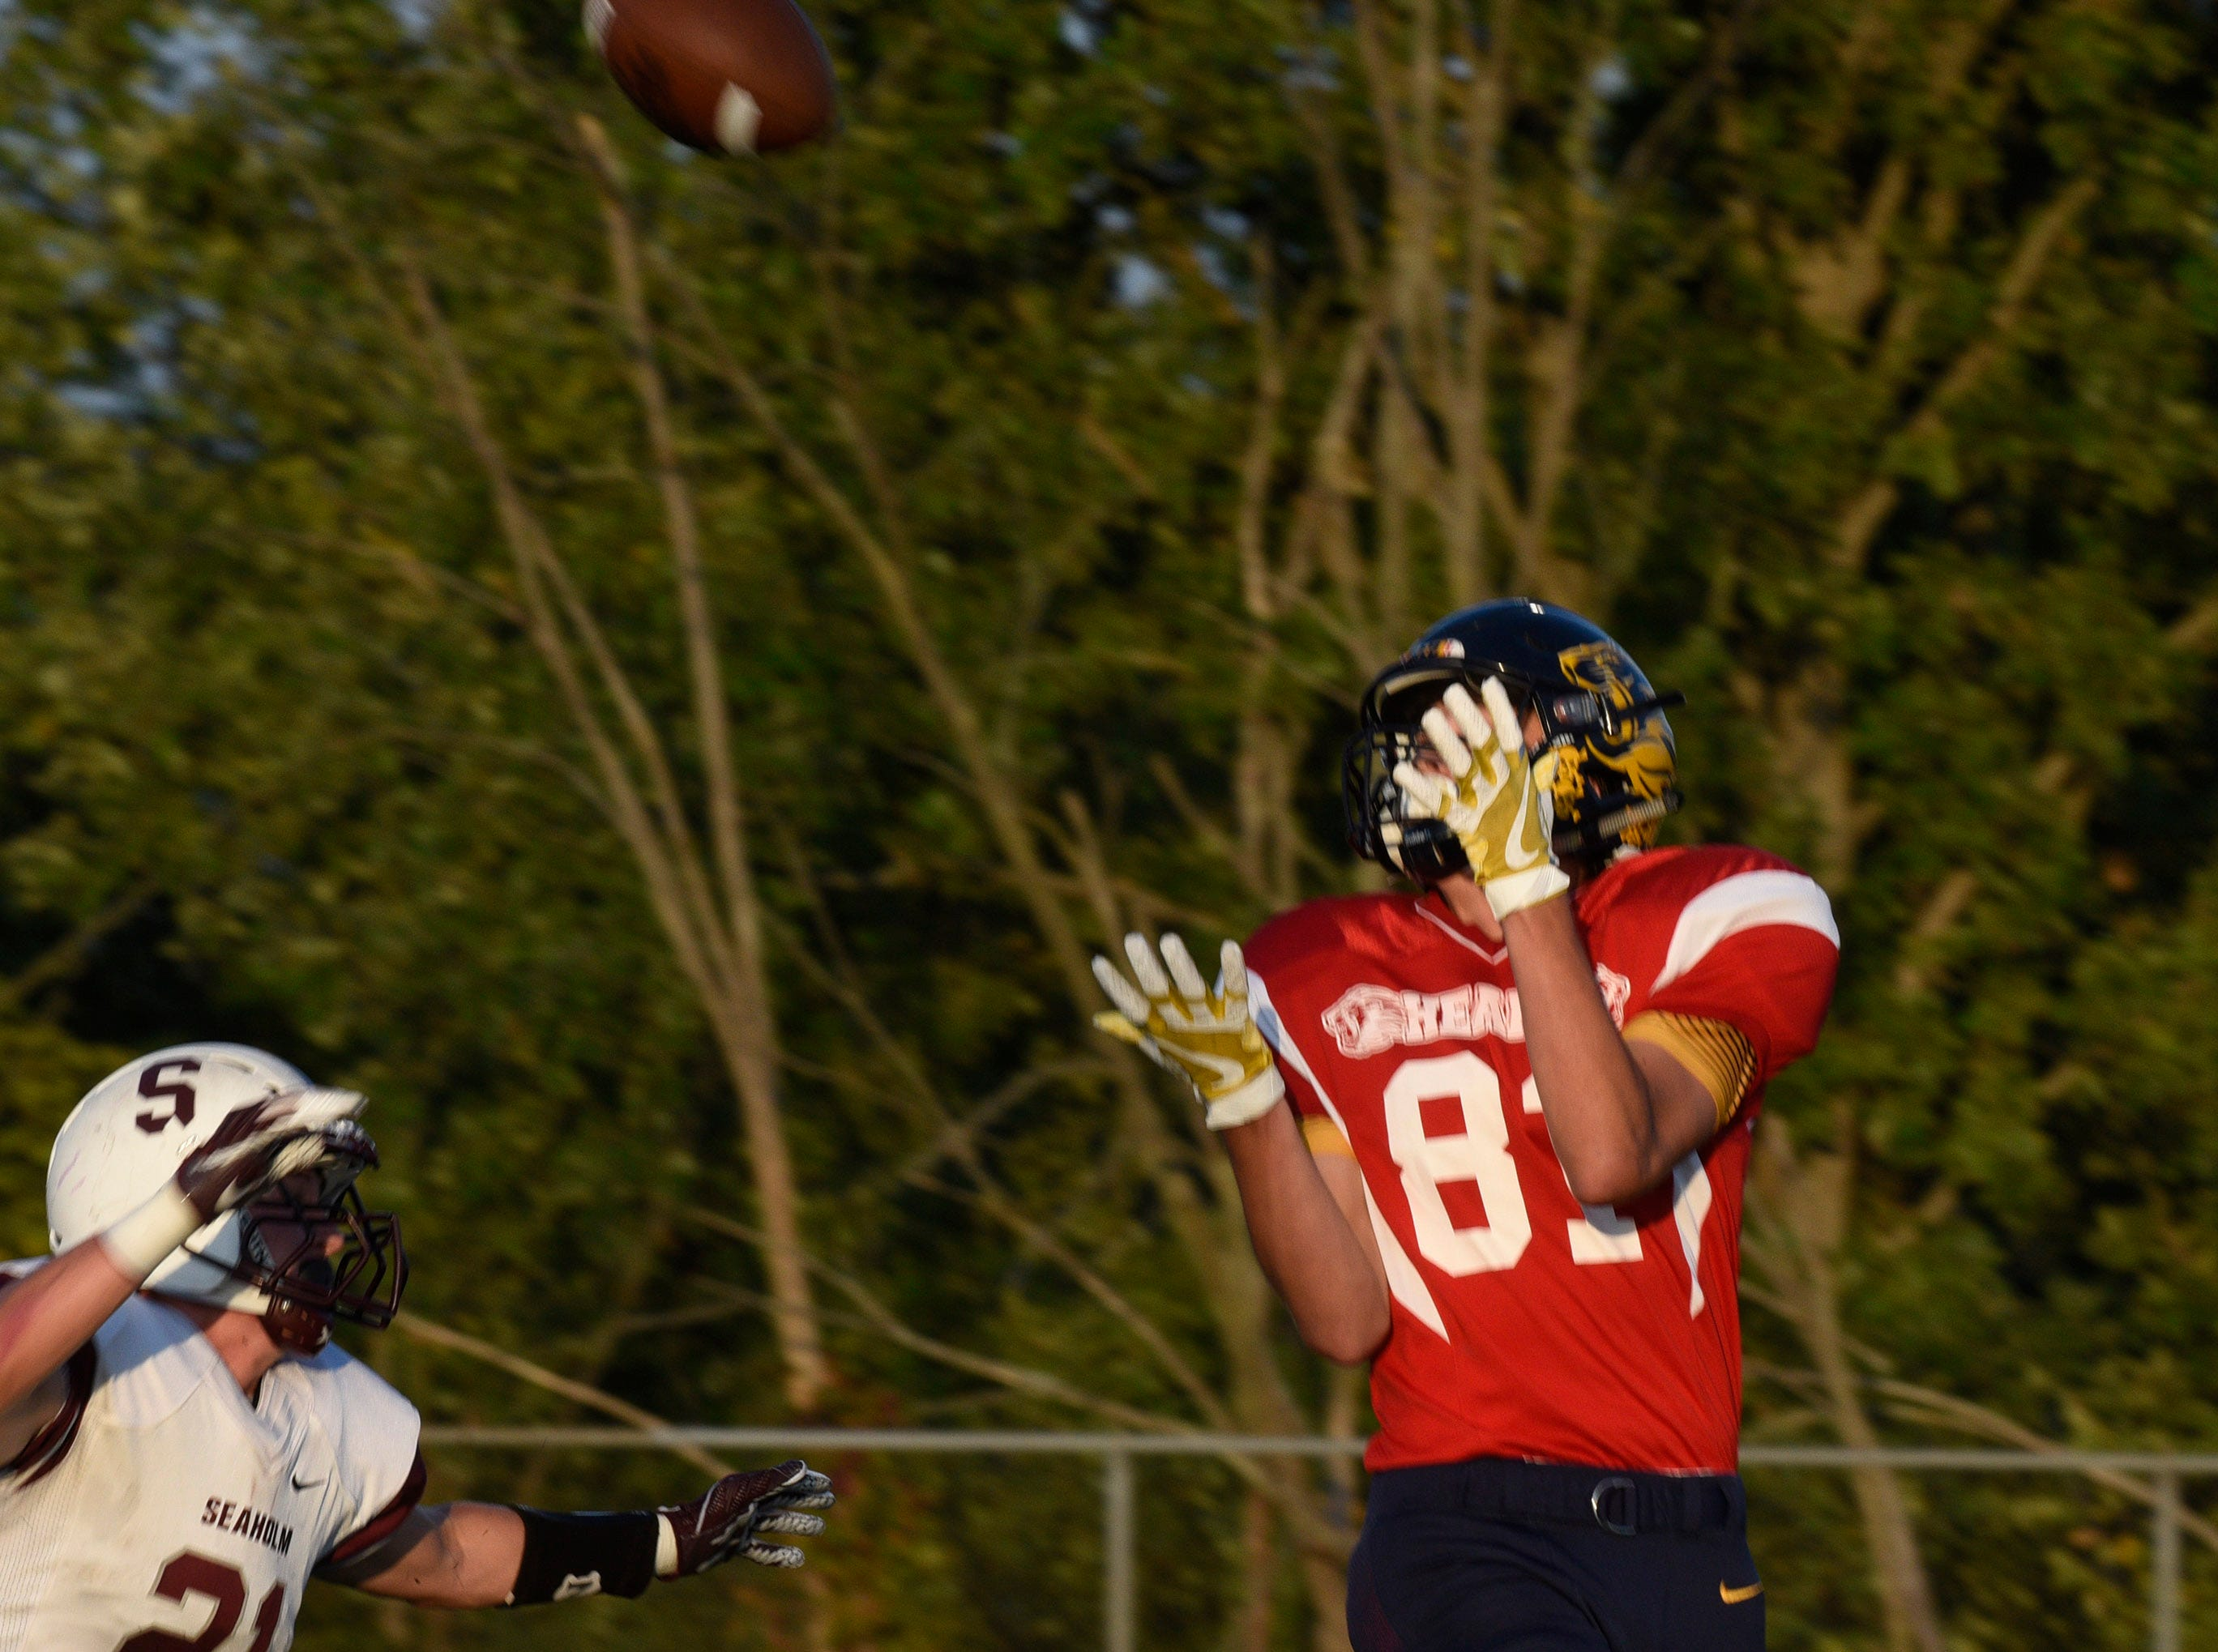 South Lyon's Lach Brenden hauls in a pass on the first play from scrimmage scoring a TD.